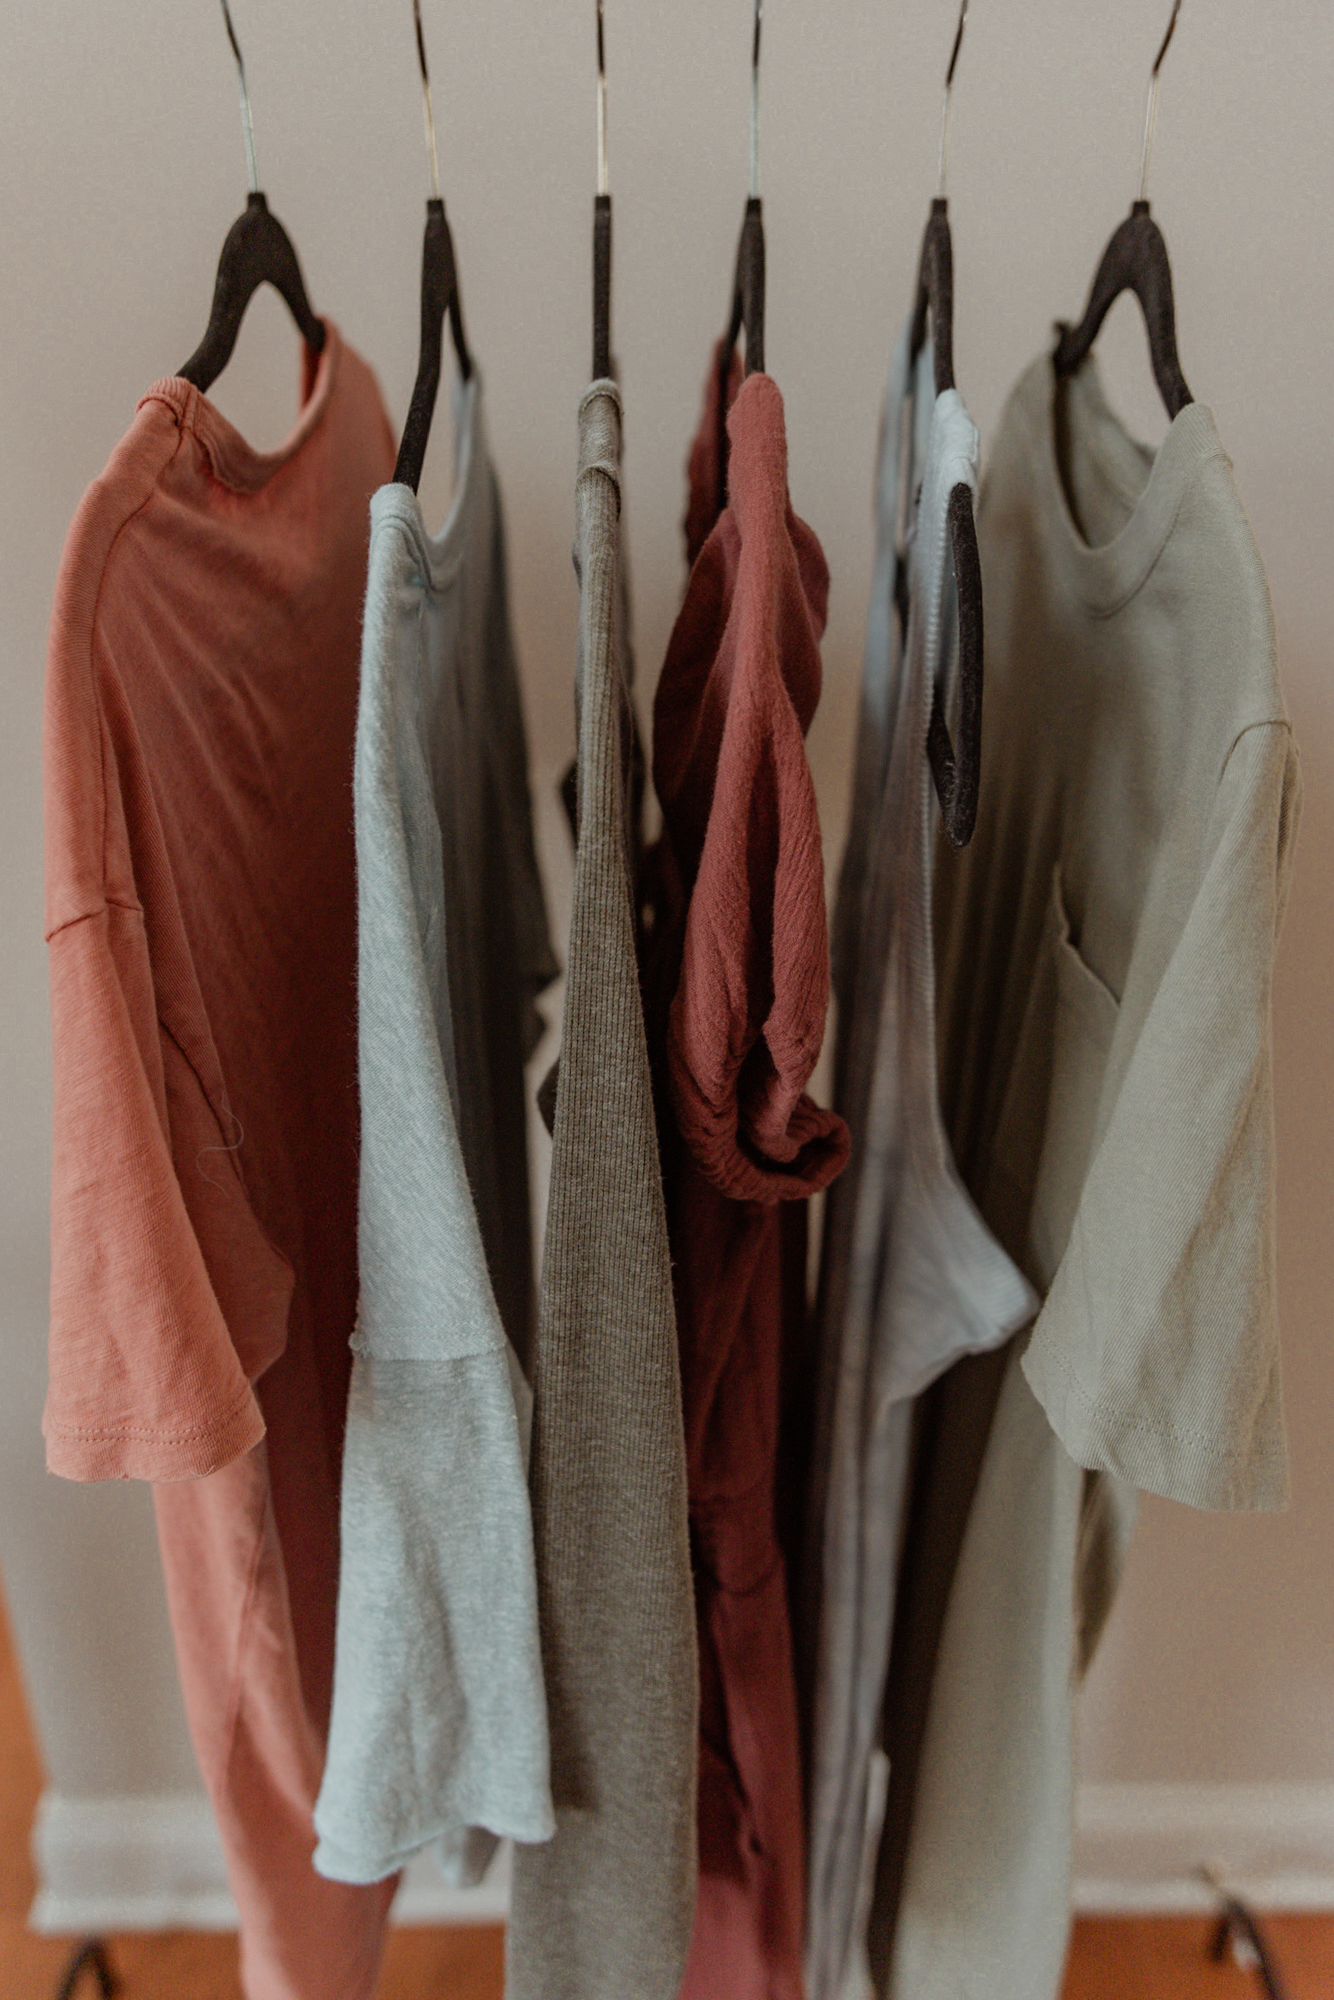 A sample of some great capsule wardrobe accent colors.